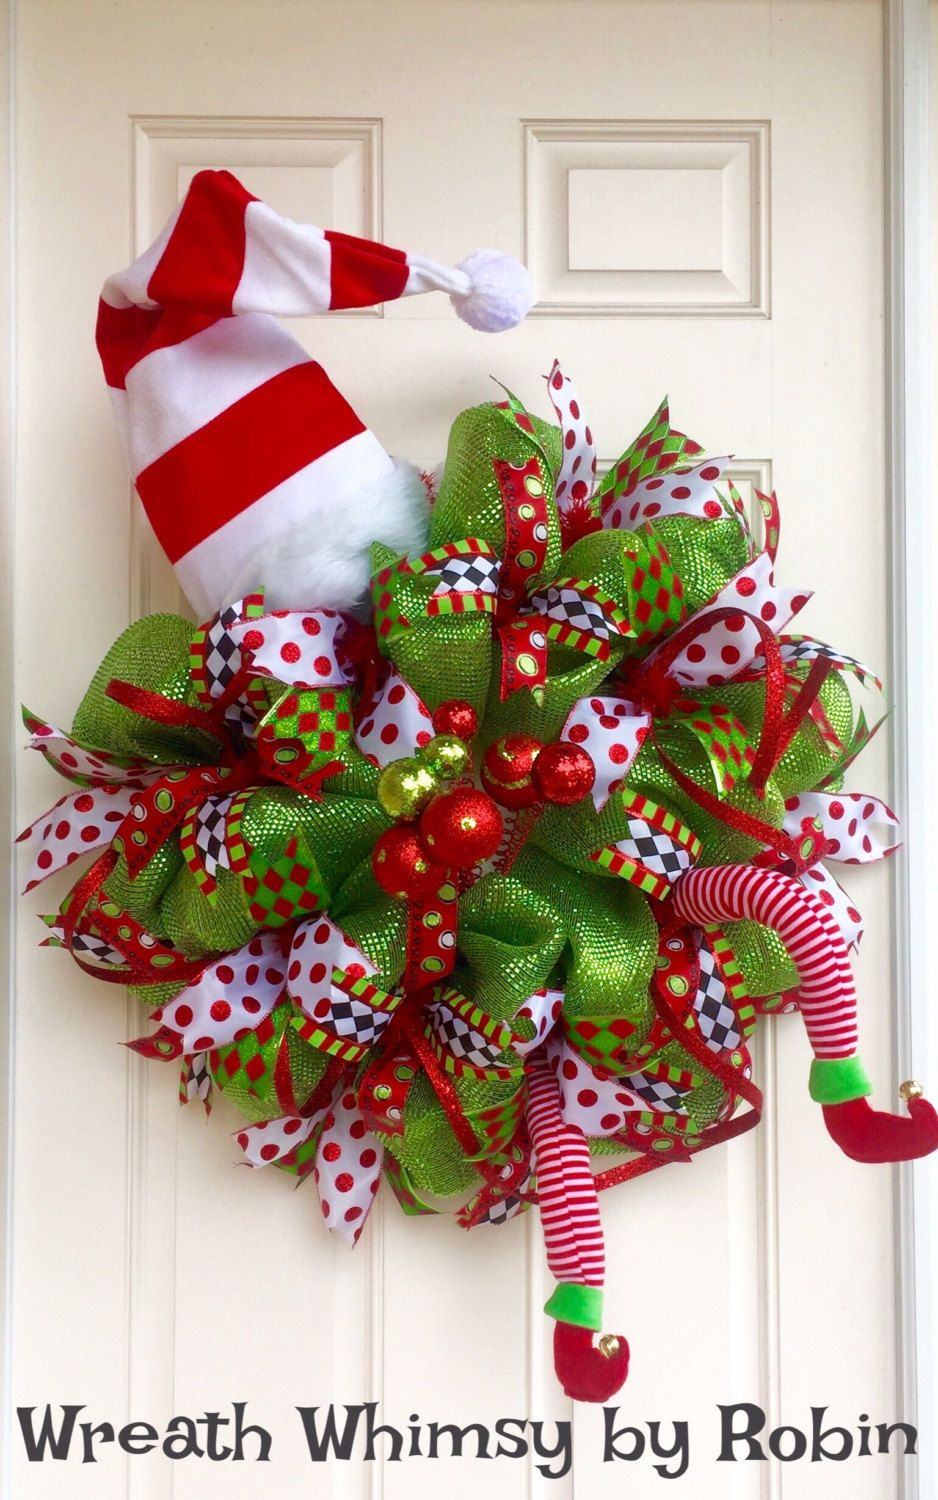 xl deco mesh holiday elf wreath in lime green red with hat that lights up christmas wreath whimsical elf decor front door wreath by - Christmas Mesh